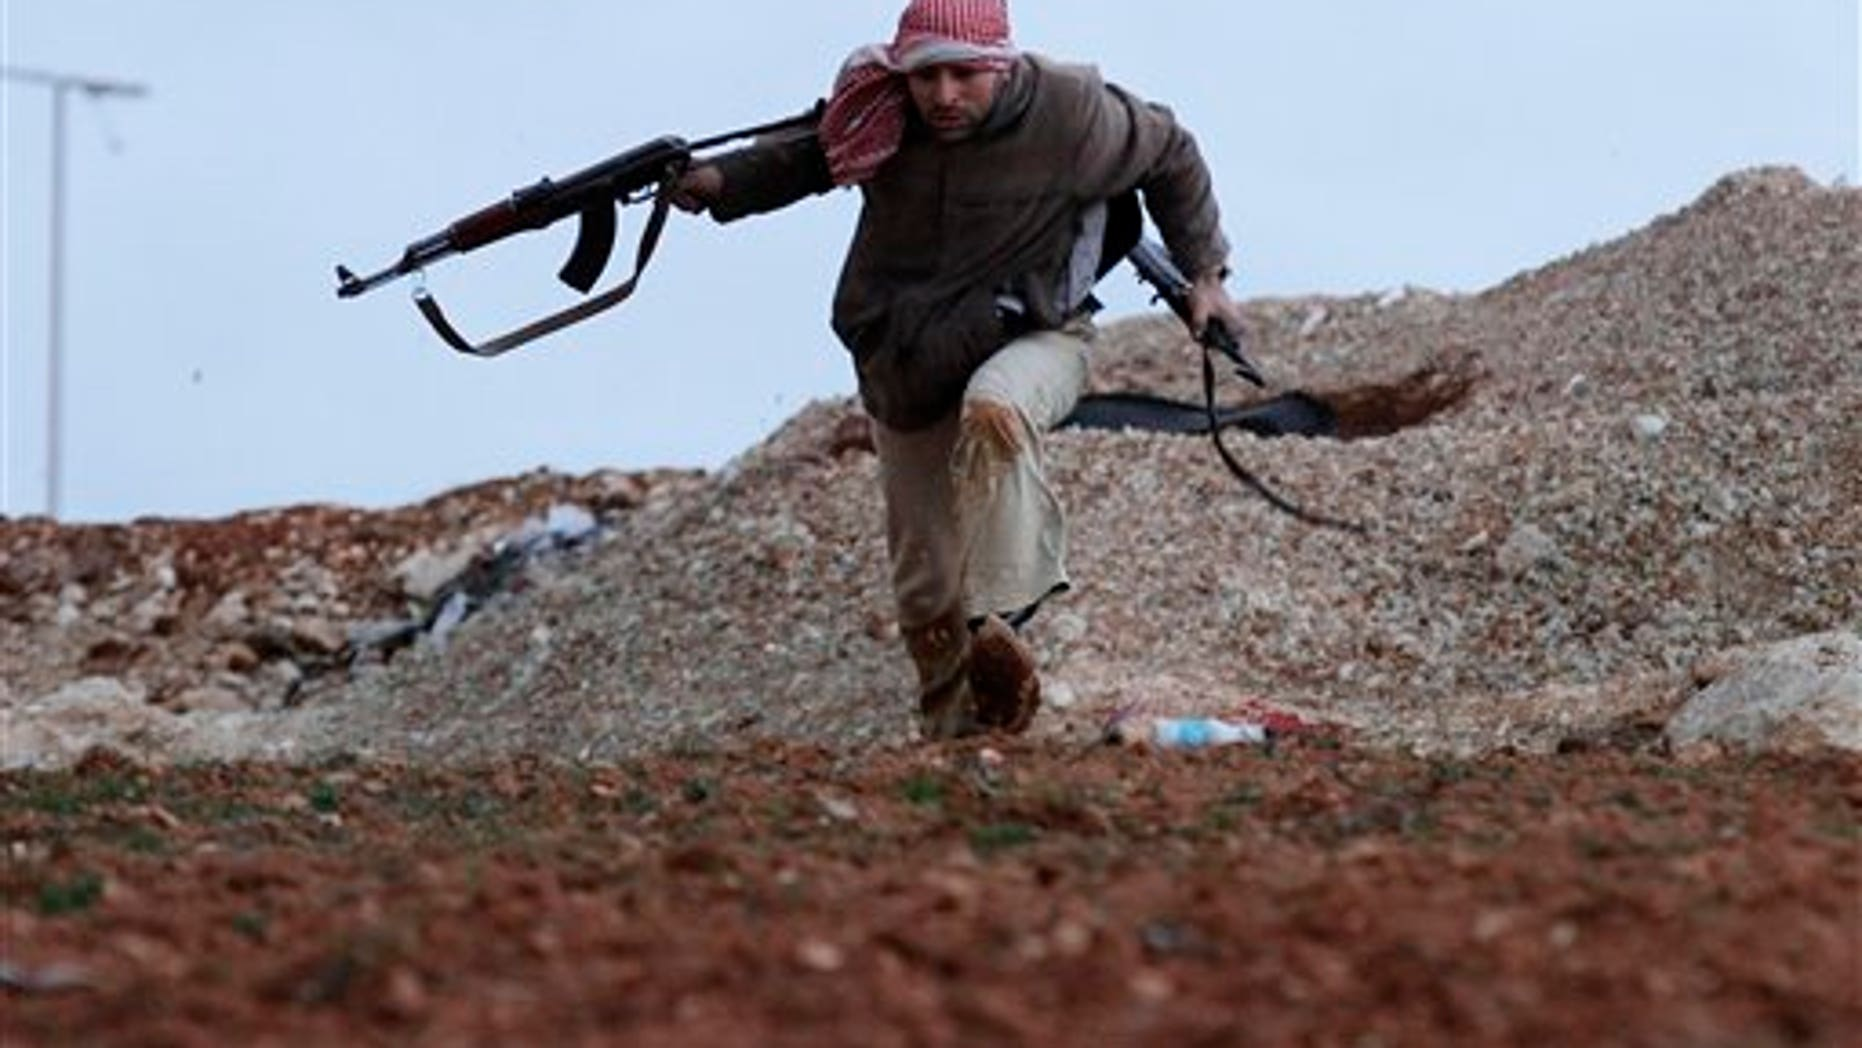 Feb. 8, 2012: A Syrian rebel runs for cover during an exchange of fire with army troops, unseen, in Idlib, Syria.